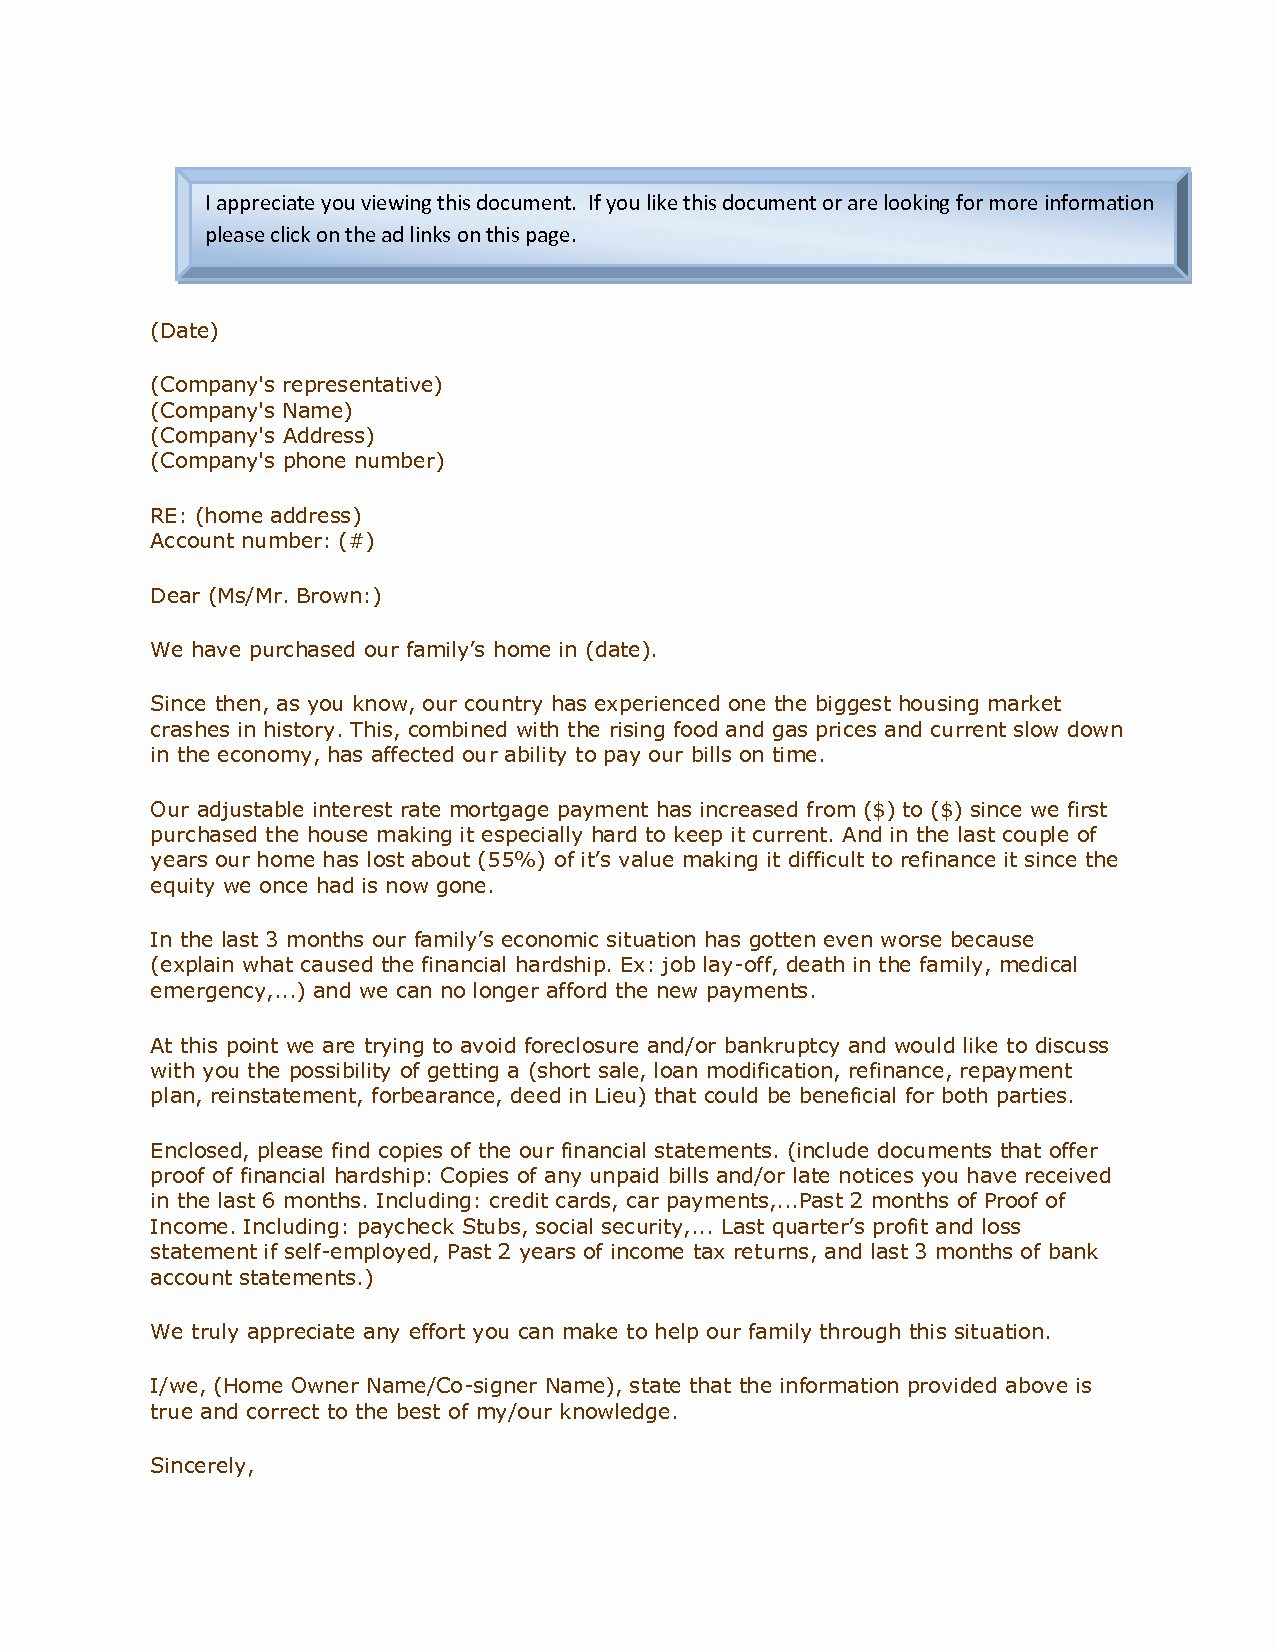 Hardship Letter Template for Loan Modification Request Luxury Mortgage Hardship Letter Template Download